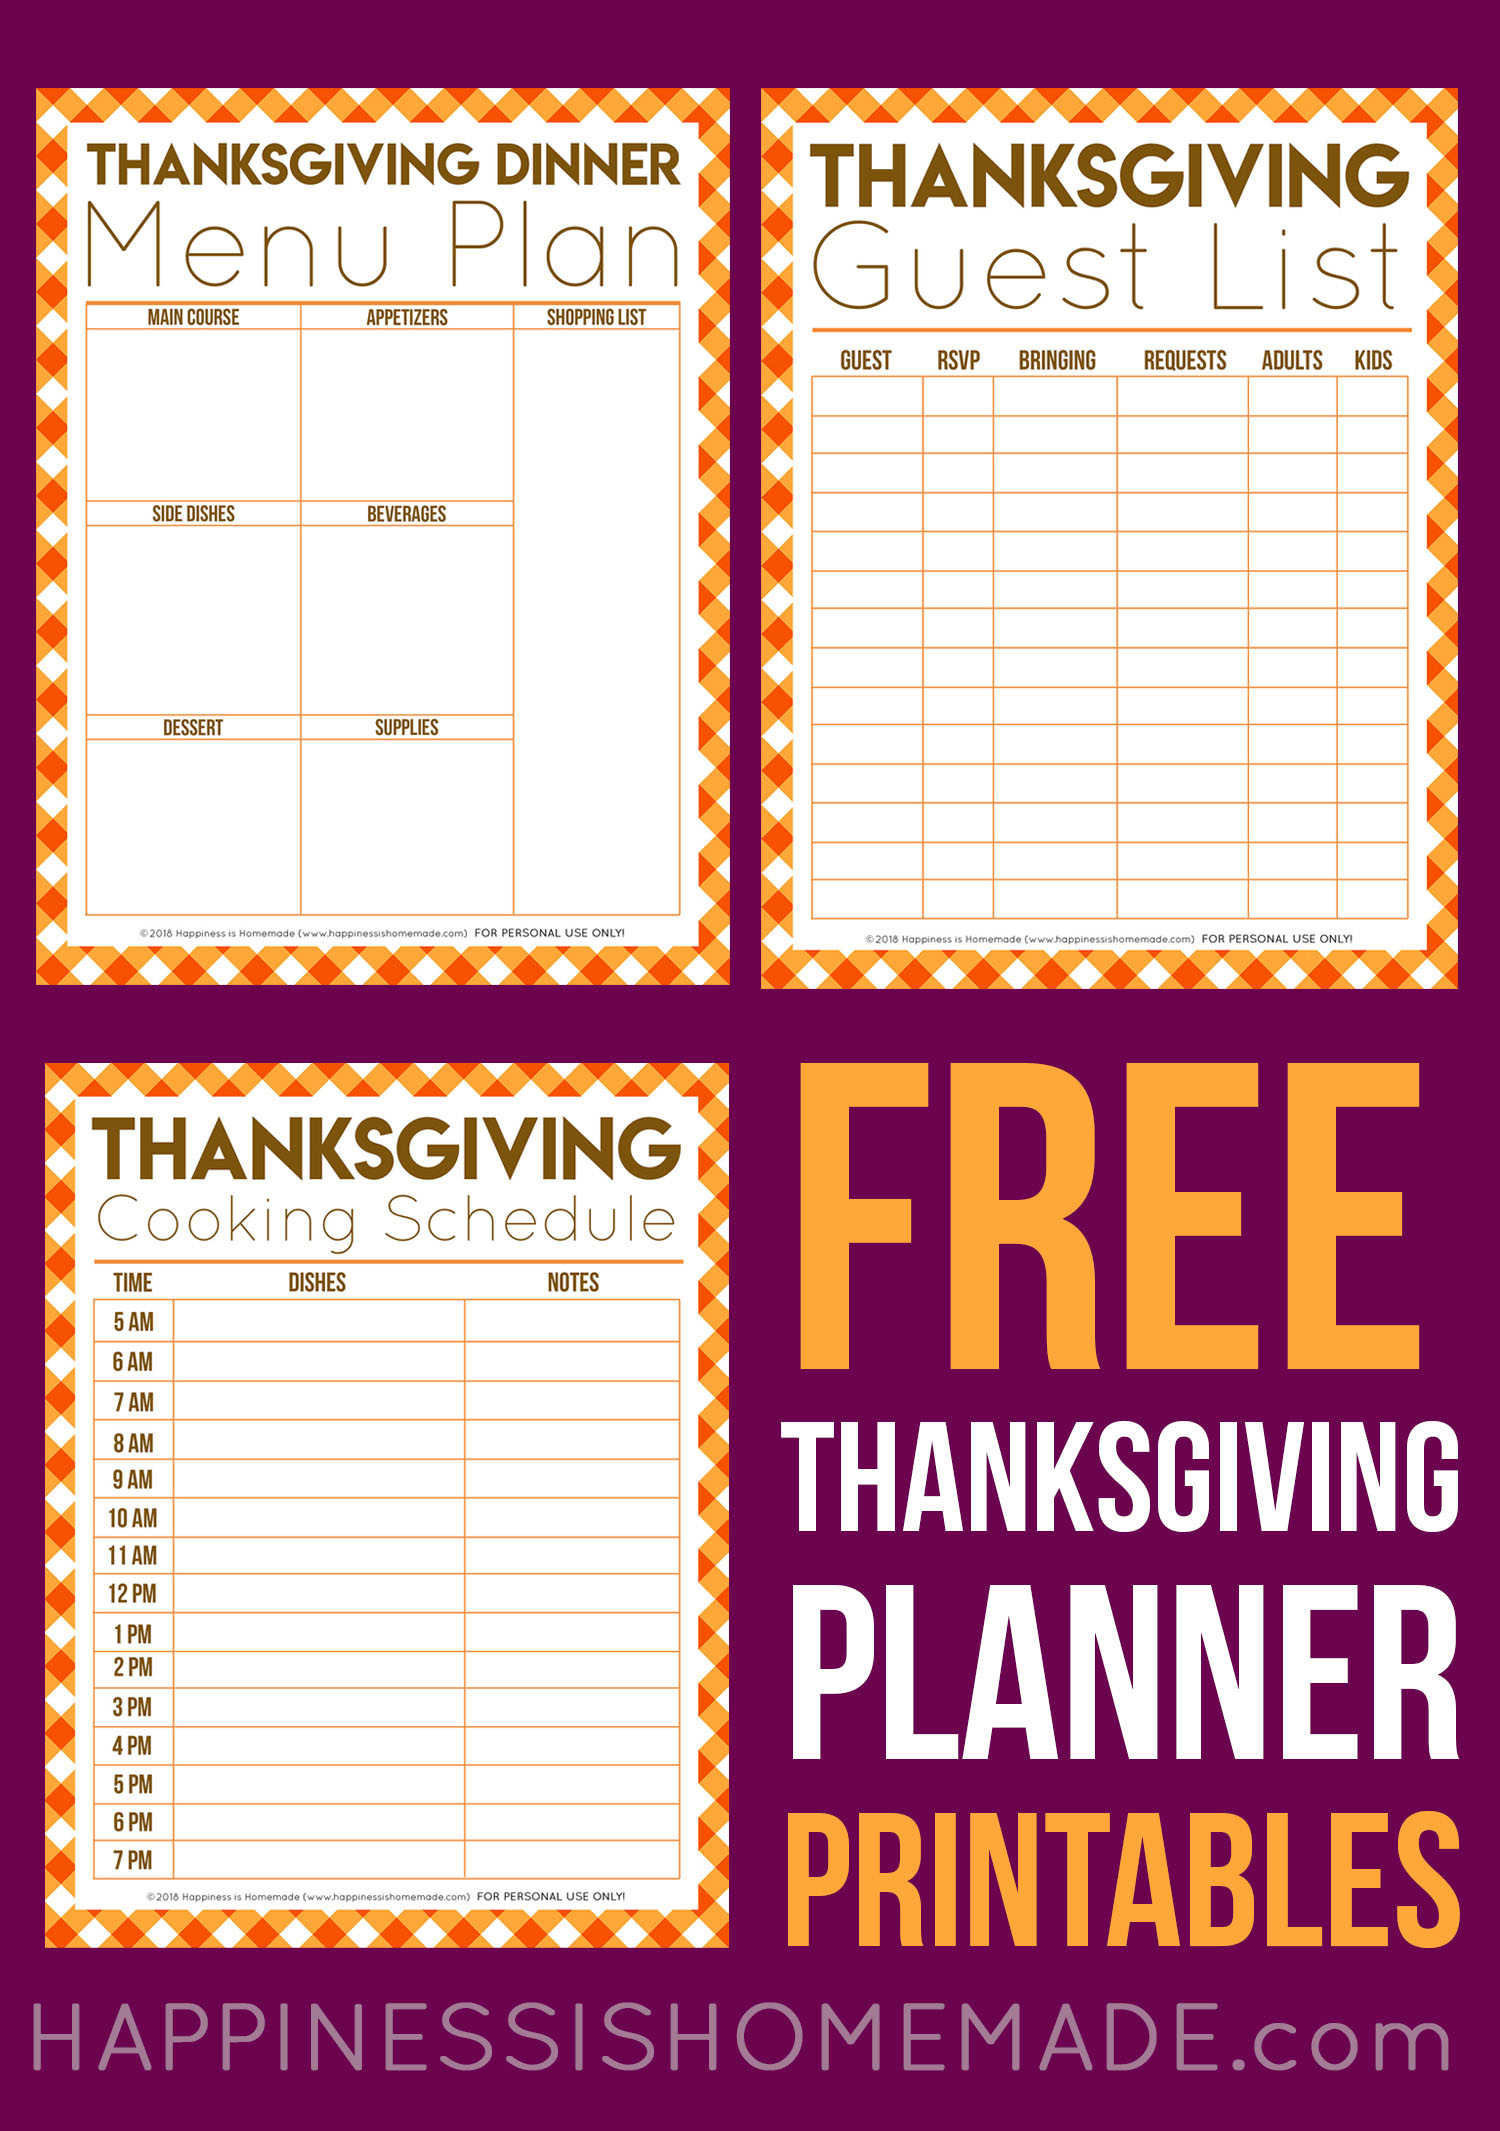 Free Thanksgiving Planner Printables - Our Thanksgiving Printable Planner Bundle includes a guest list, menu planner, and cooking schedule to help plan out your entire Thanksgiving meal! These printables make Thanksgiving planning easy peasy!